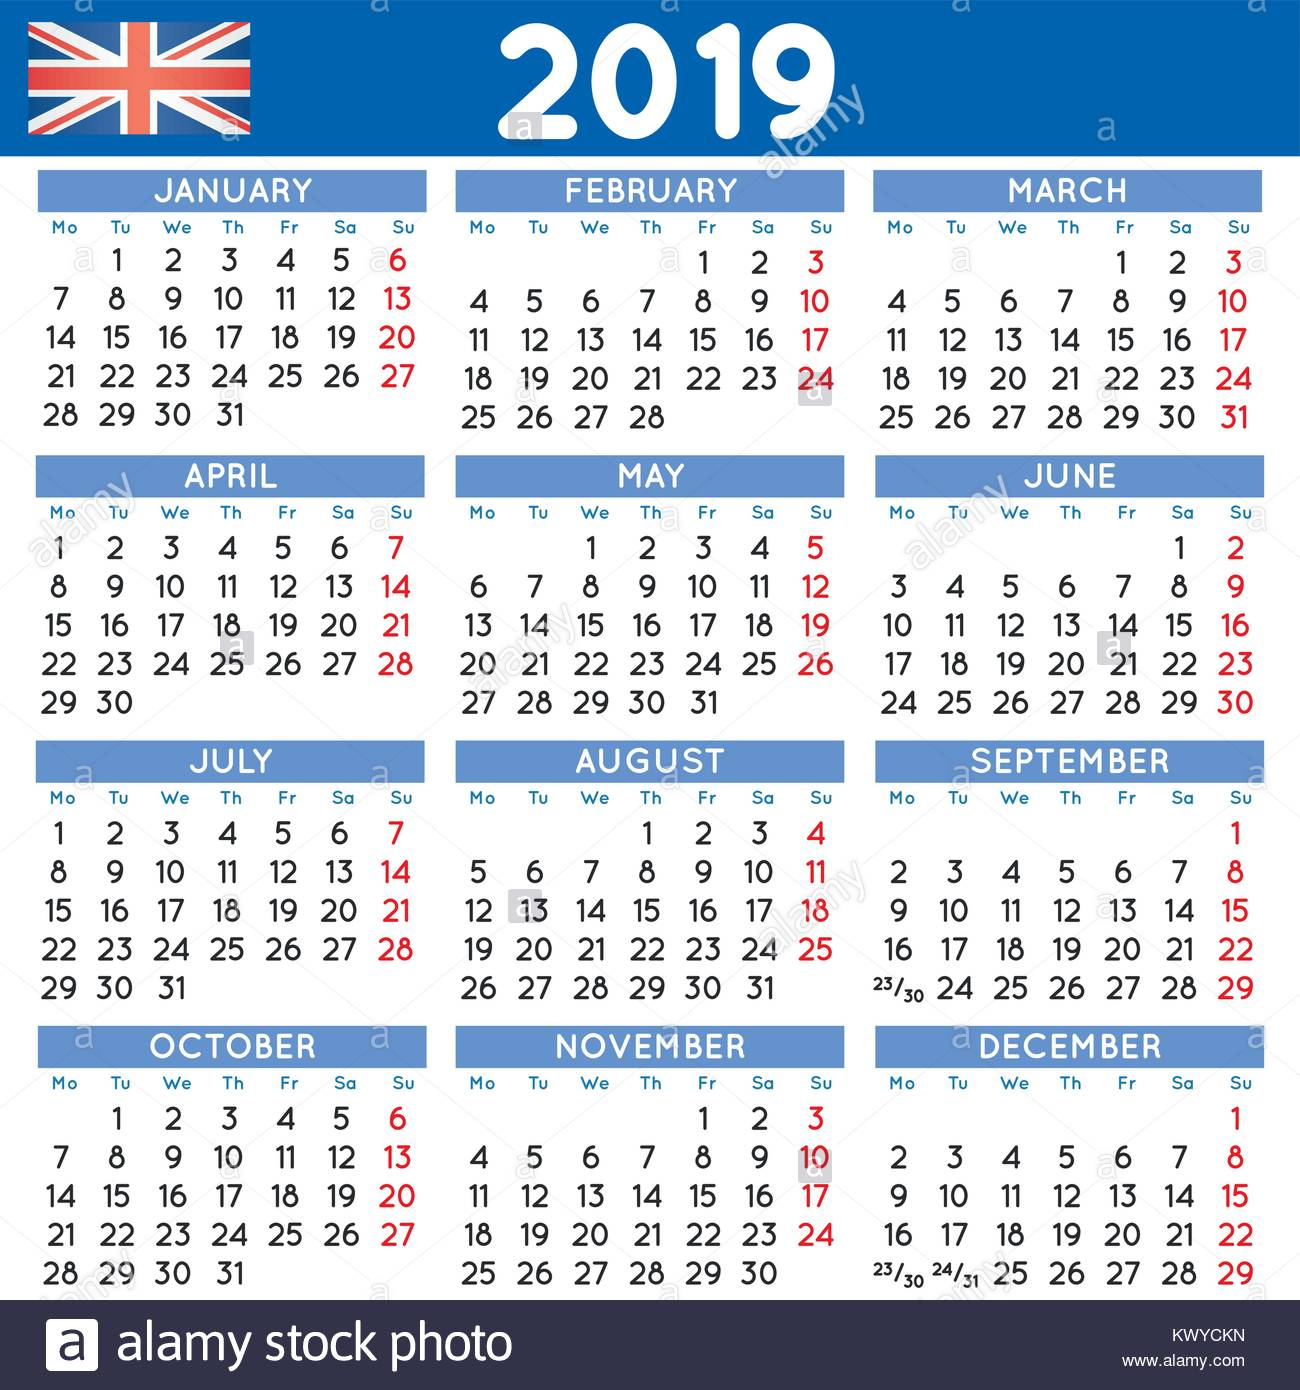 2019 elegant squared calendar english uk year 2019 calendar calendar 2019 week starts on monday